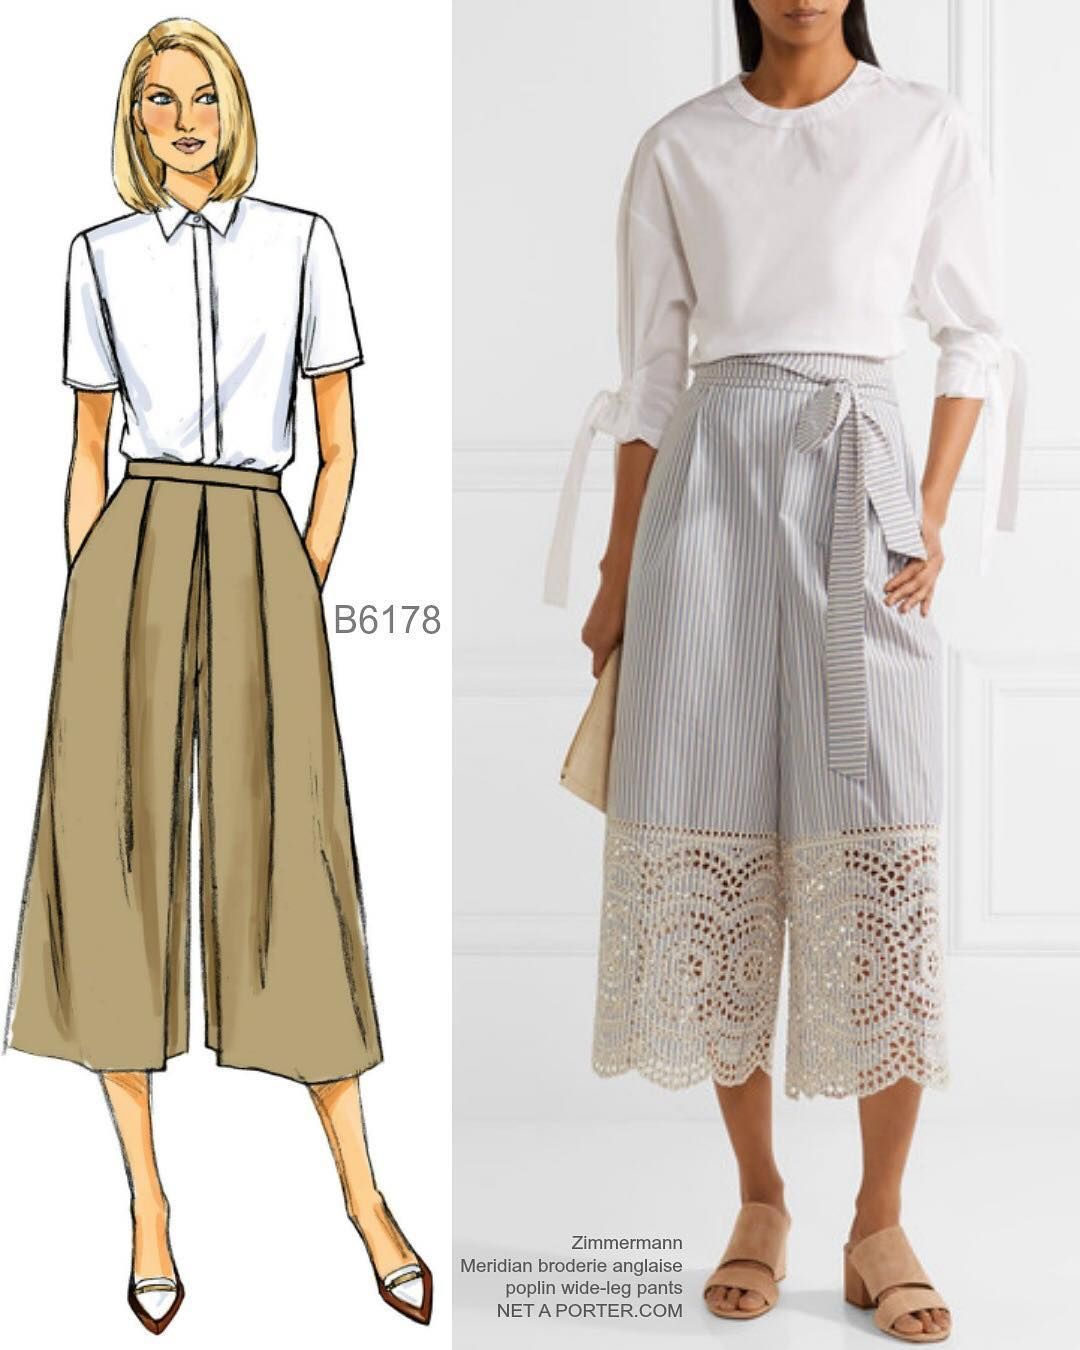 Sew the look(tm): These gorgeous culottes on the right. Borrow the lace idea! #butterick #b6178 📷inspo culottes by Zimmermann and available at Net-a-Porter. #sewthelook #summersewchallenge